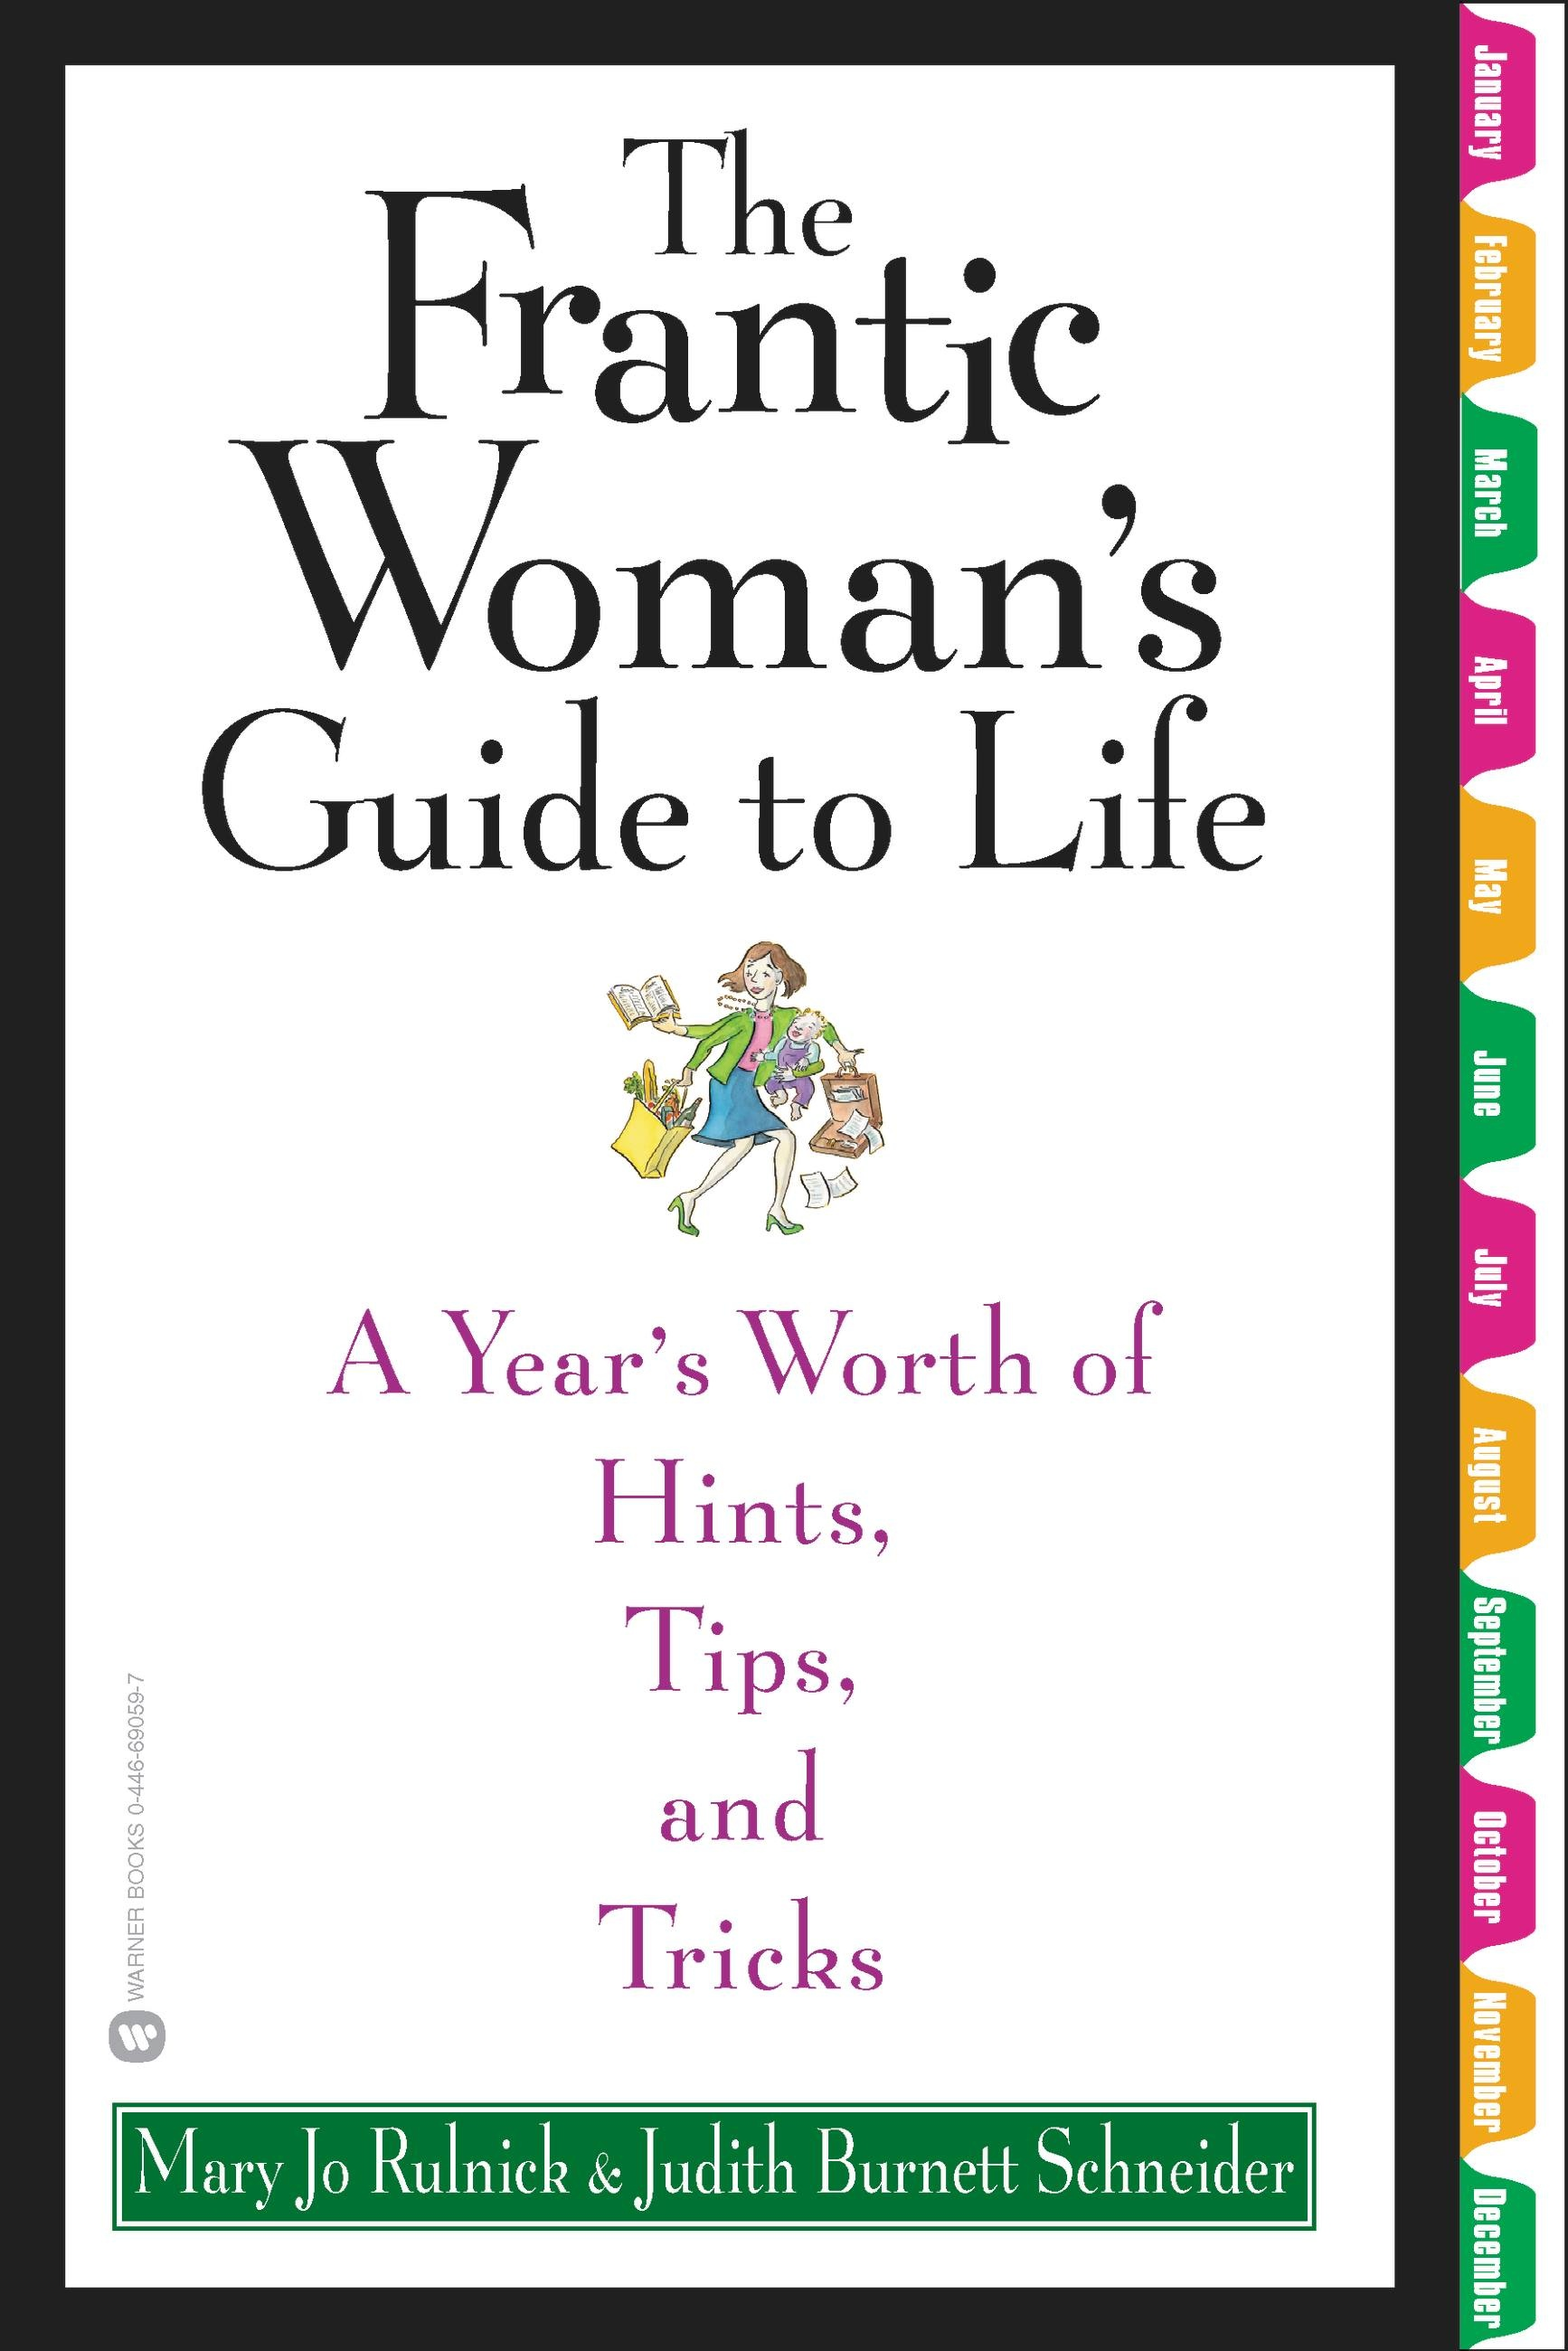 The Frantic Woman's Guide to Life